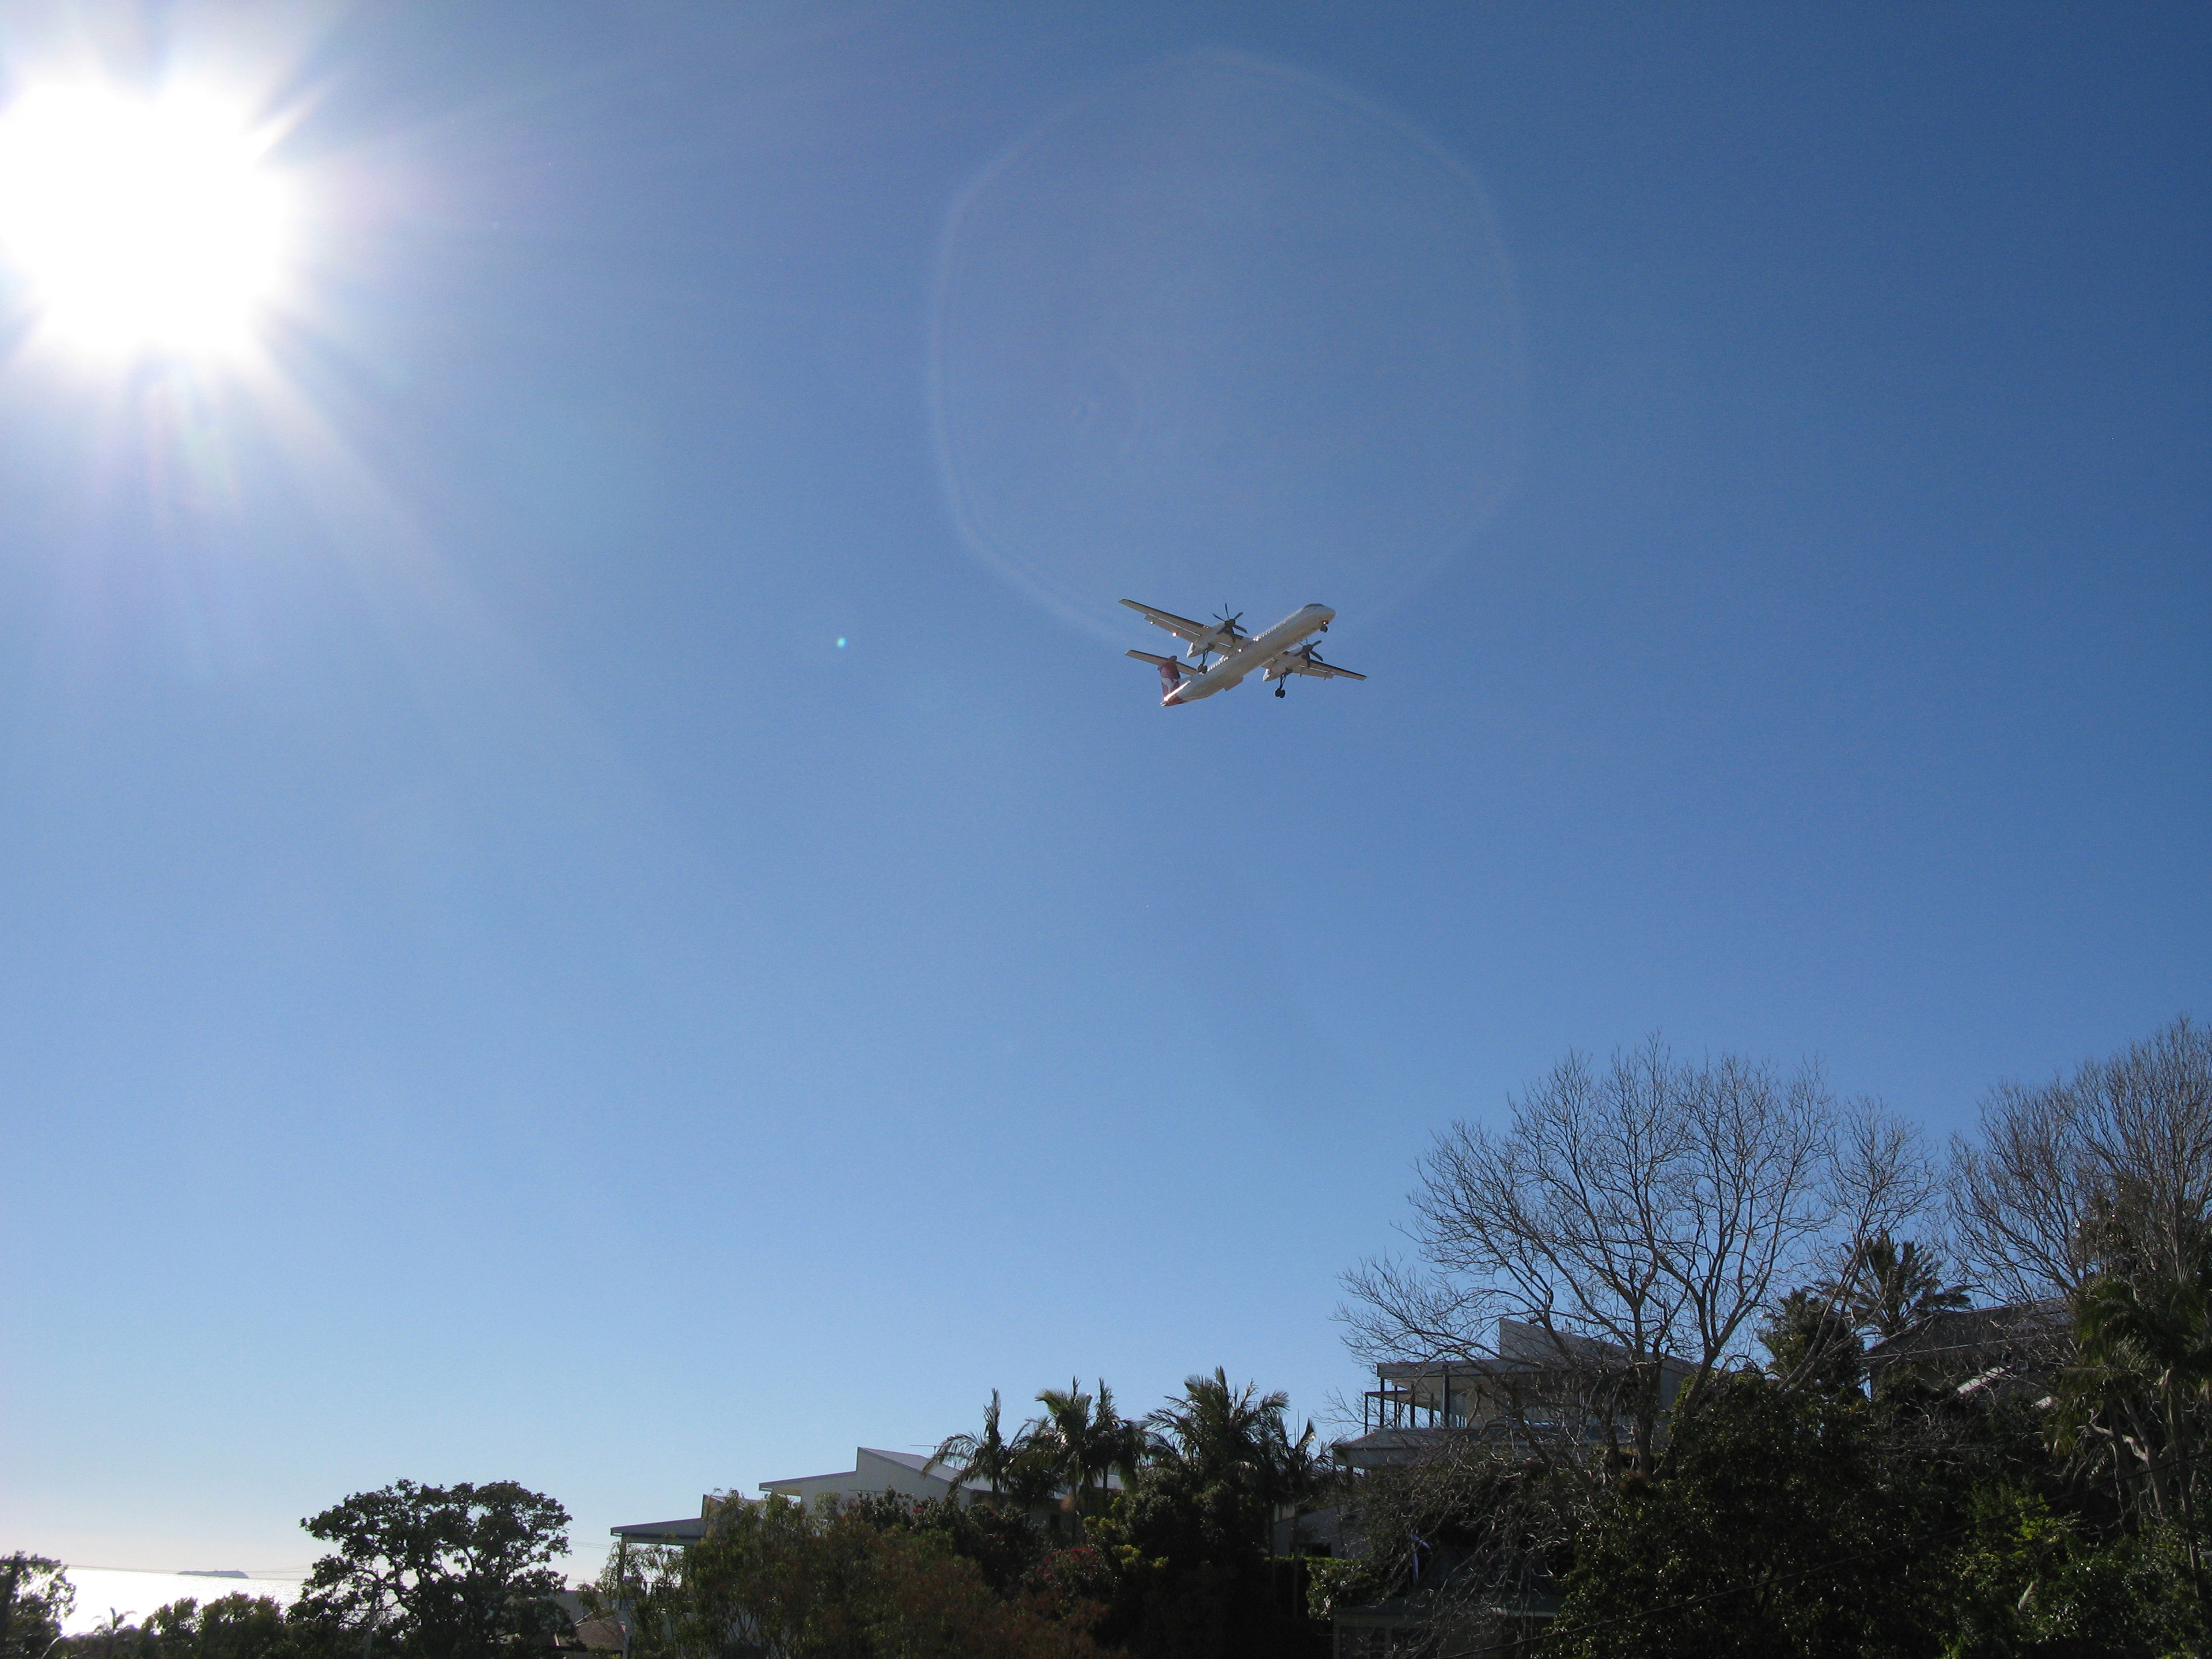 Low Angle View of Small Aircraft Flying over Hillside Homes in Large Blue Sky with Bright Sun